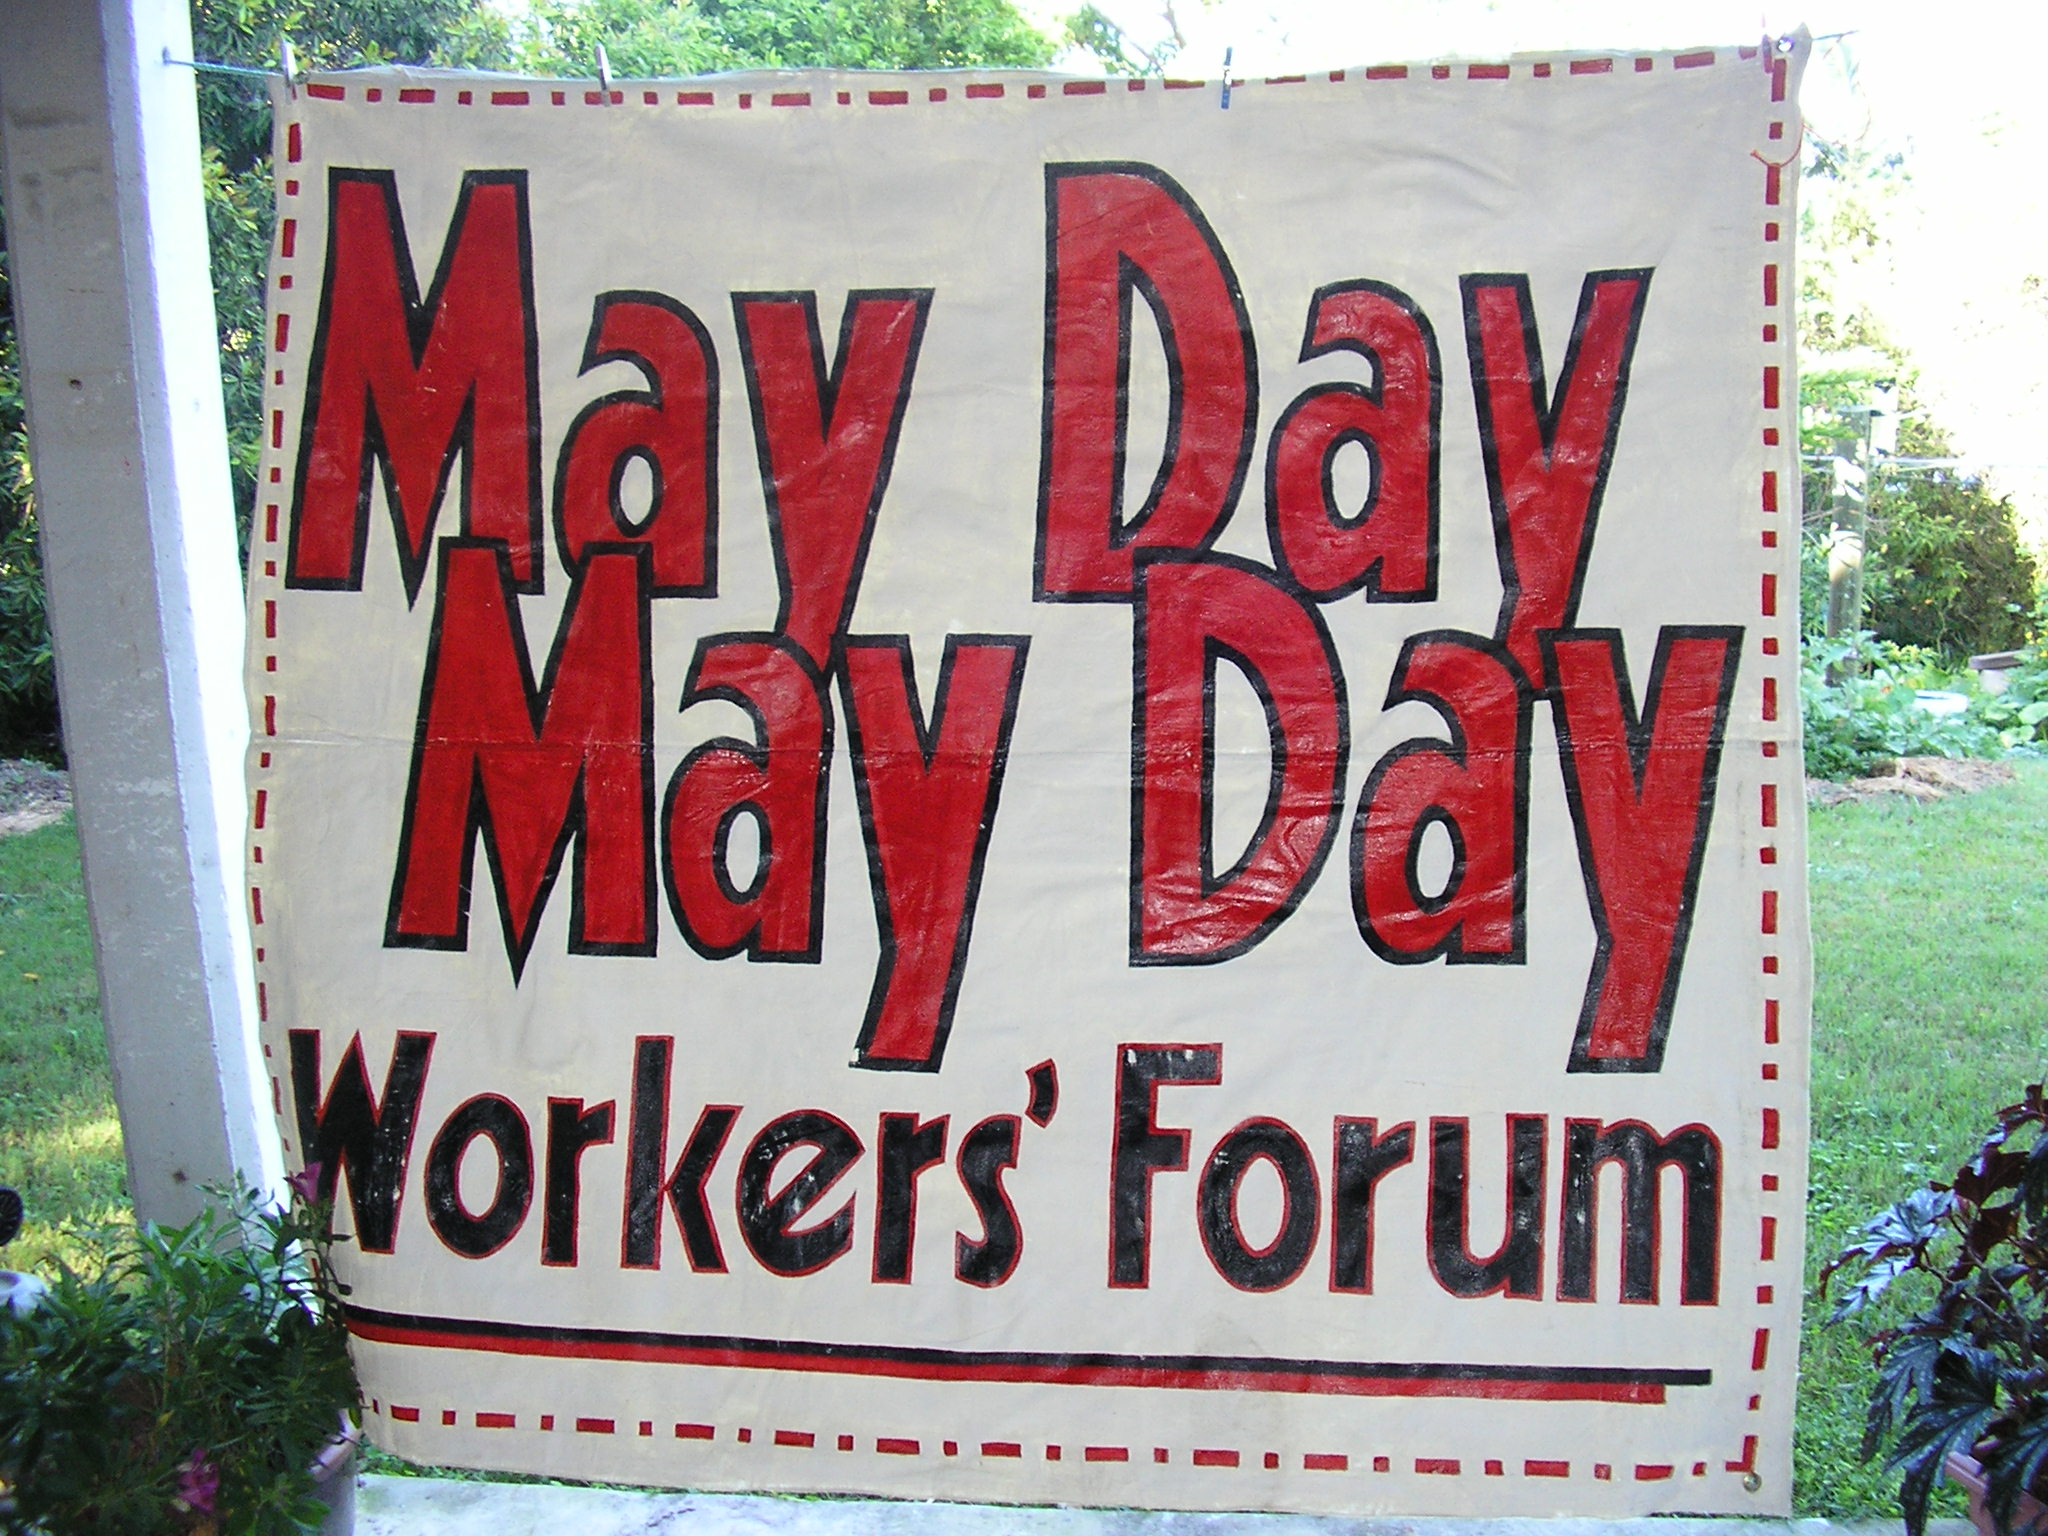 May Day May Day WorkersForum